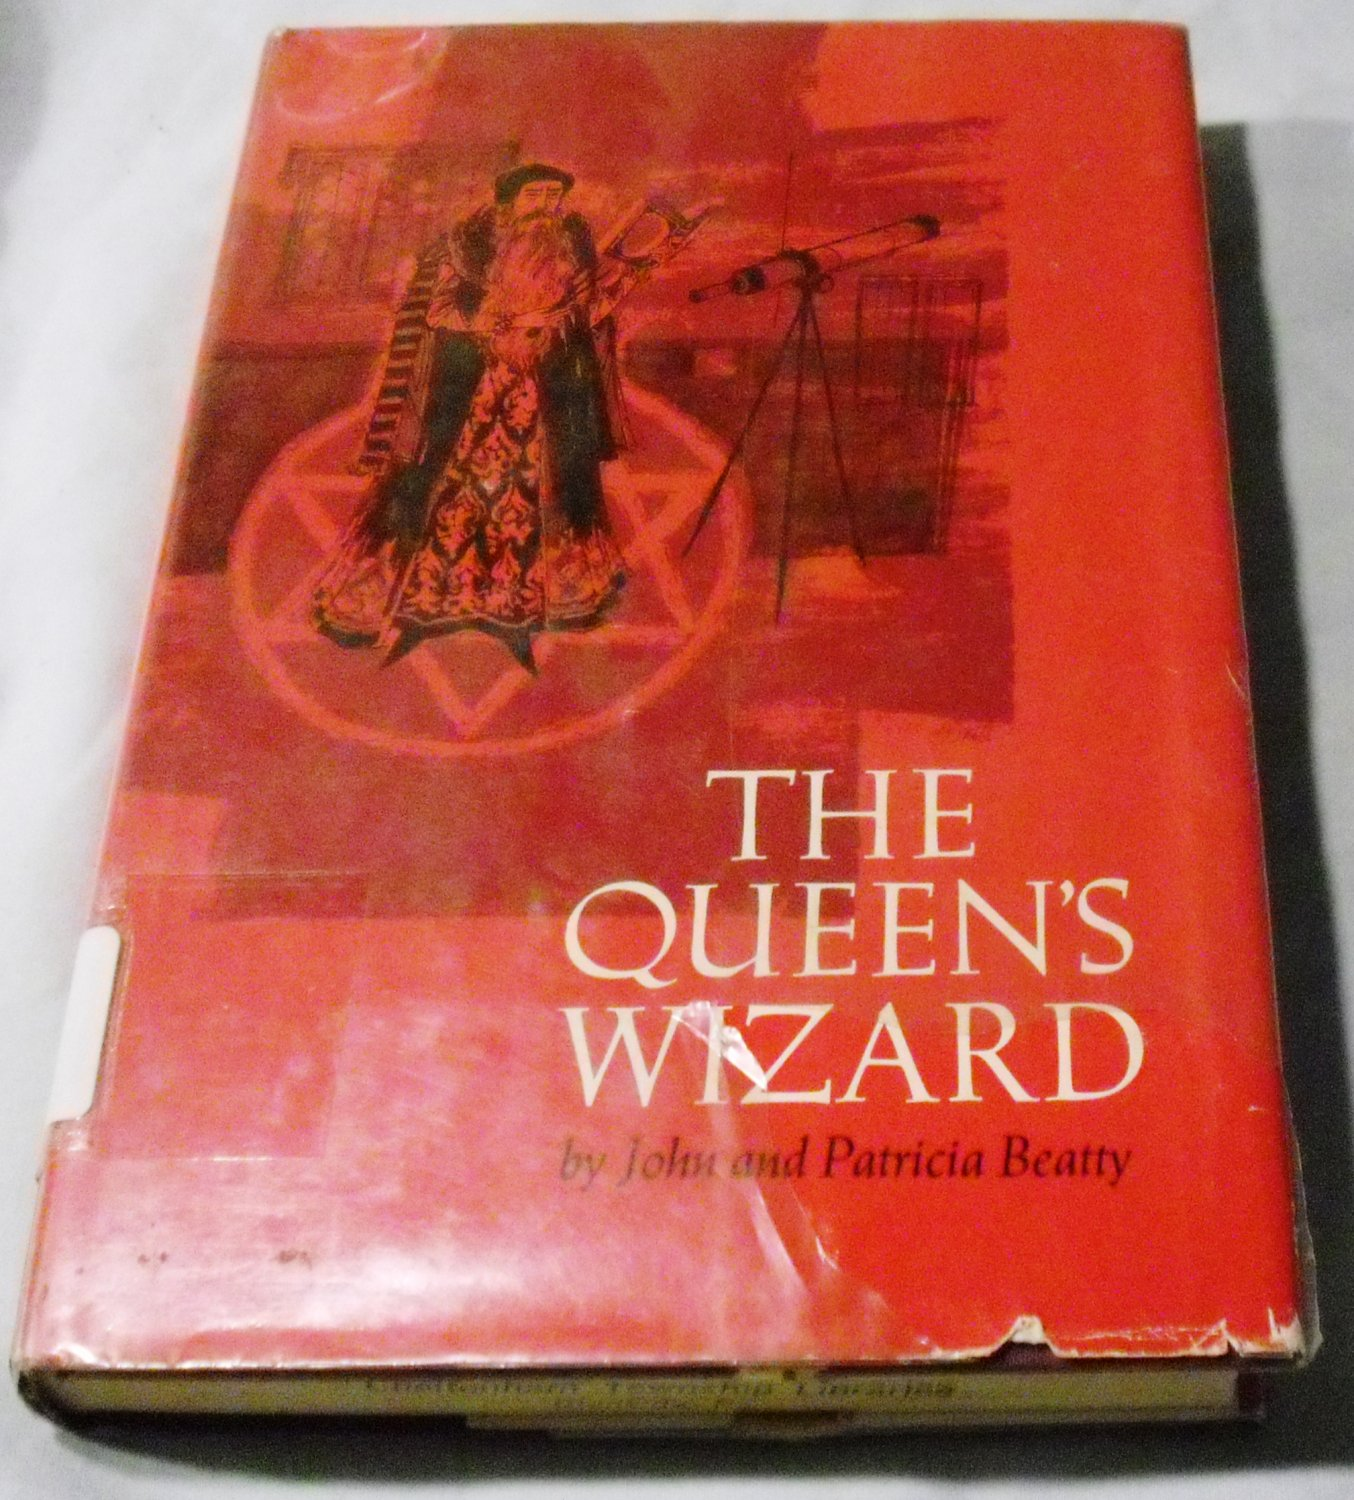 Queen's Wizard [Hardcover] by John and Patricia Beatty